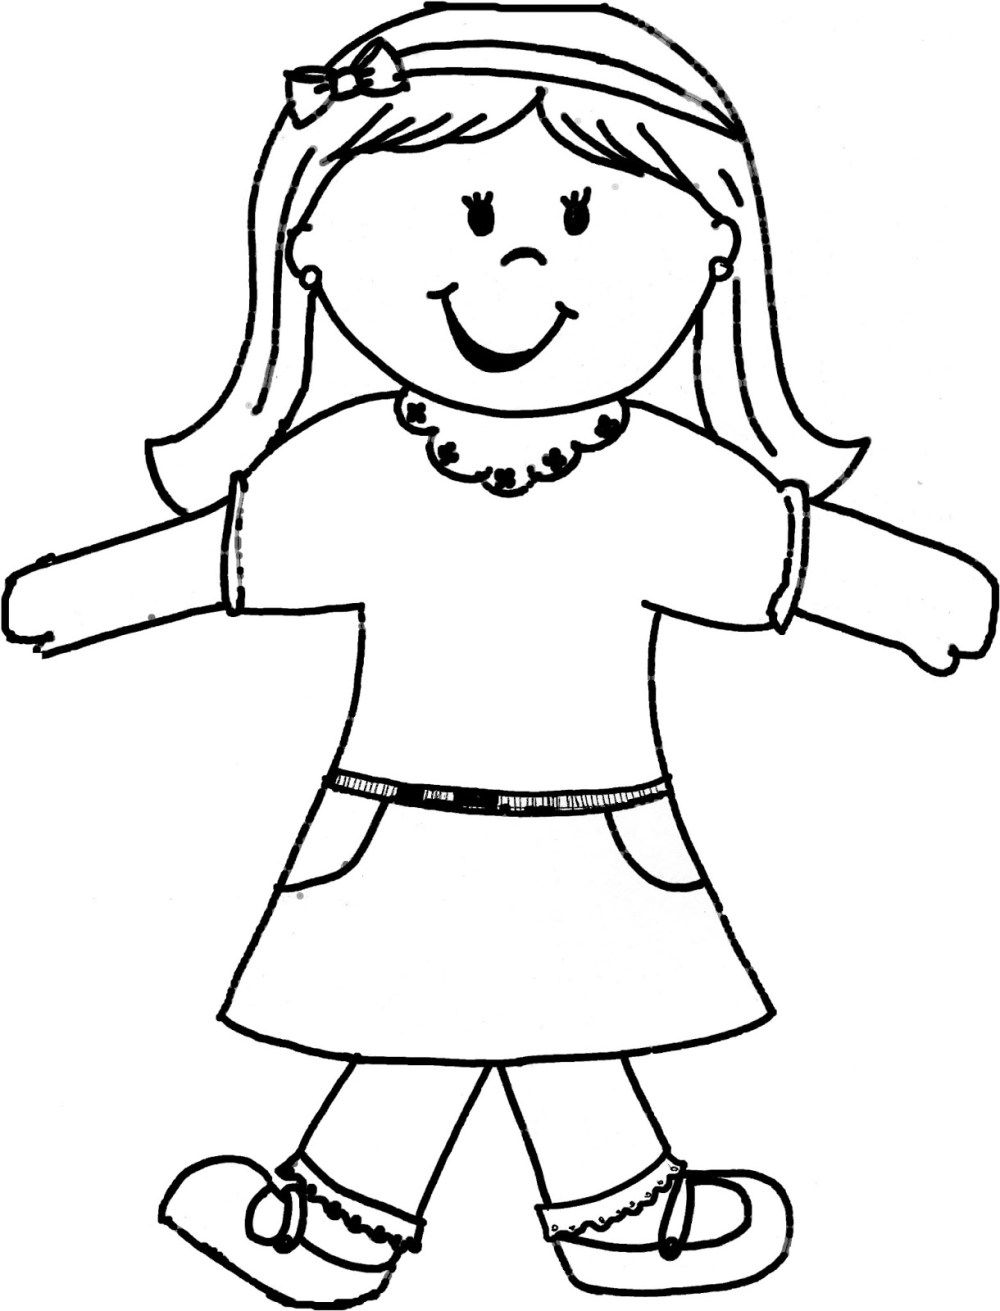 medium resolution of flat stanley clipart 1368292 license personal use